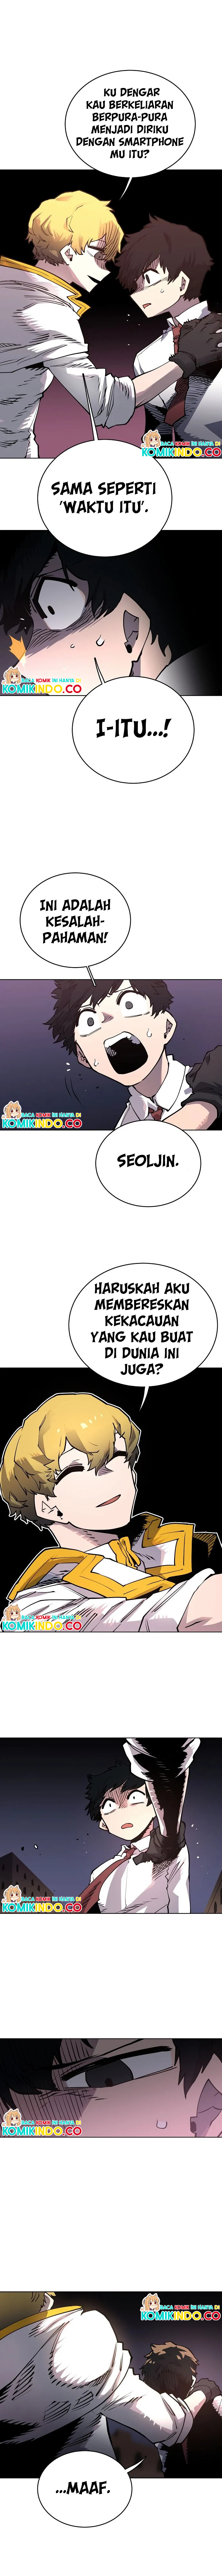 Player Chapter 20